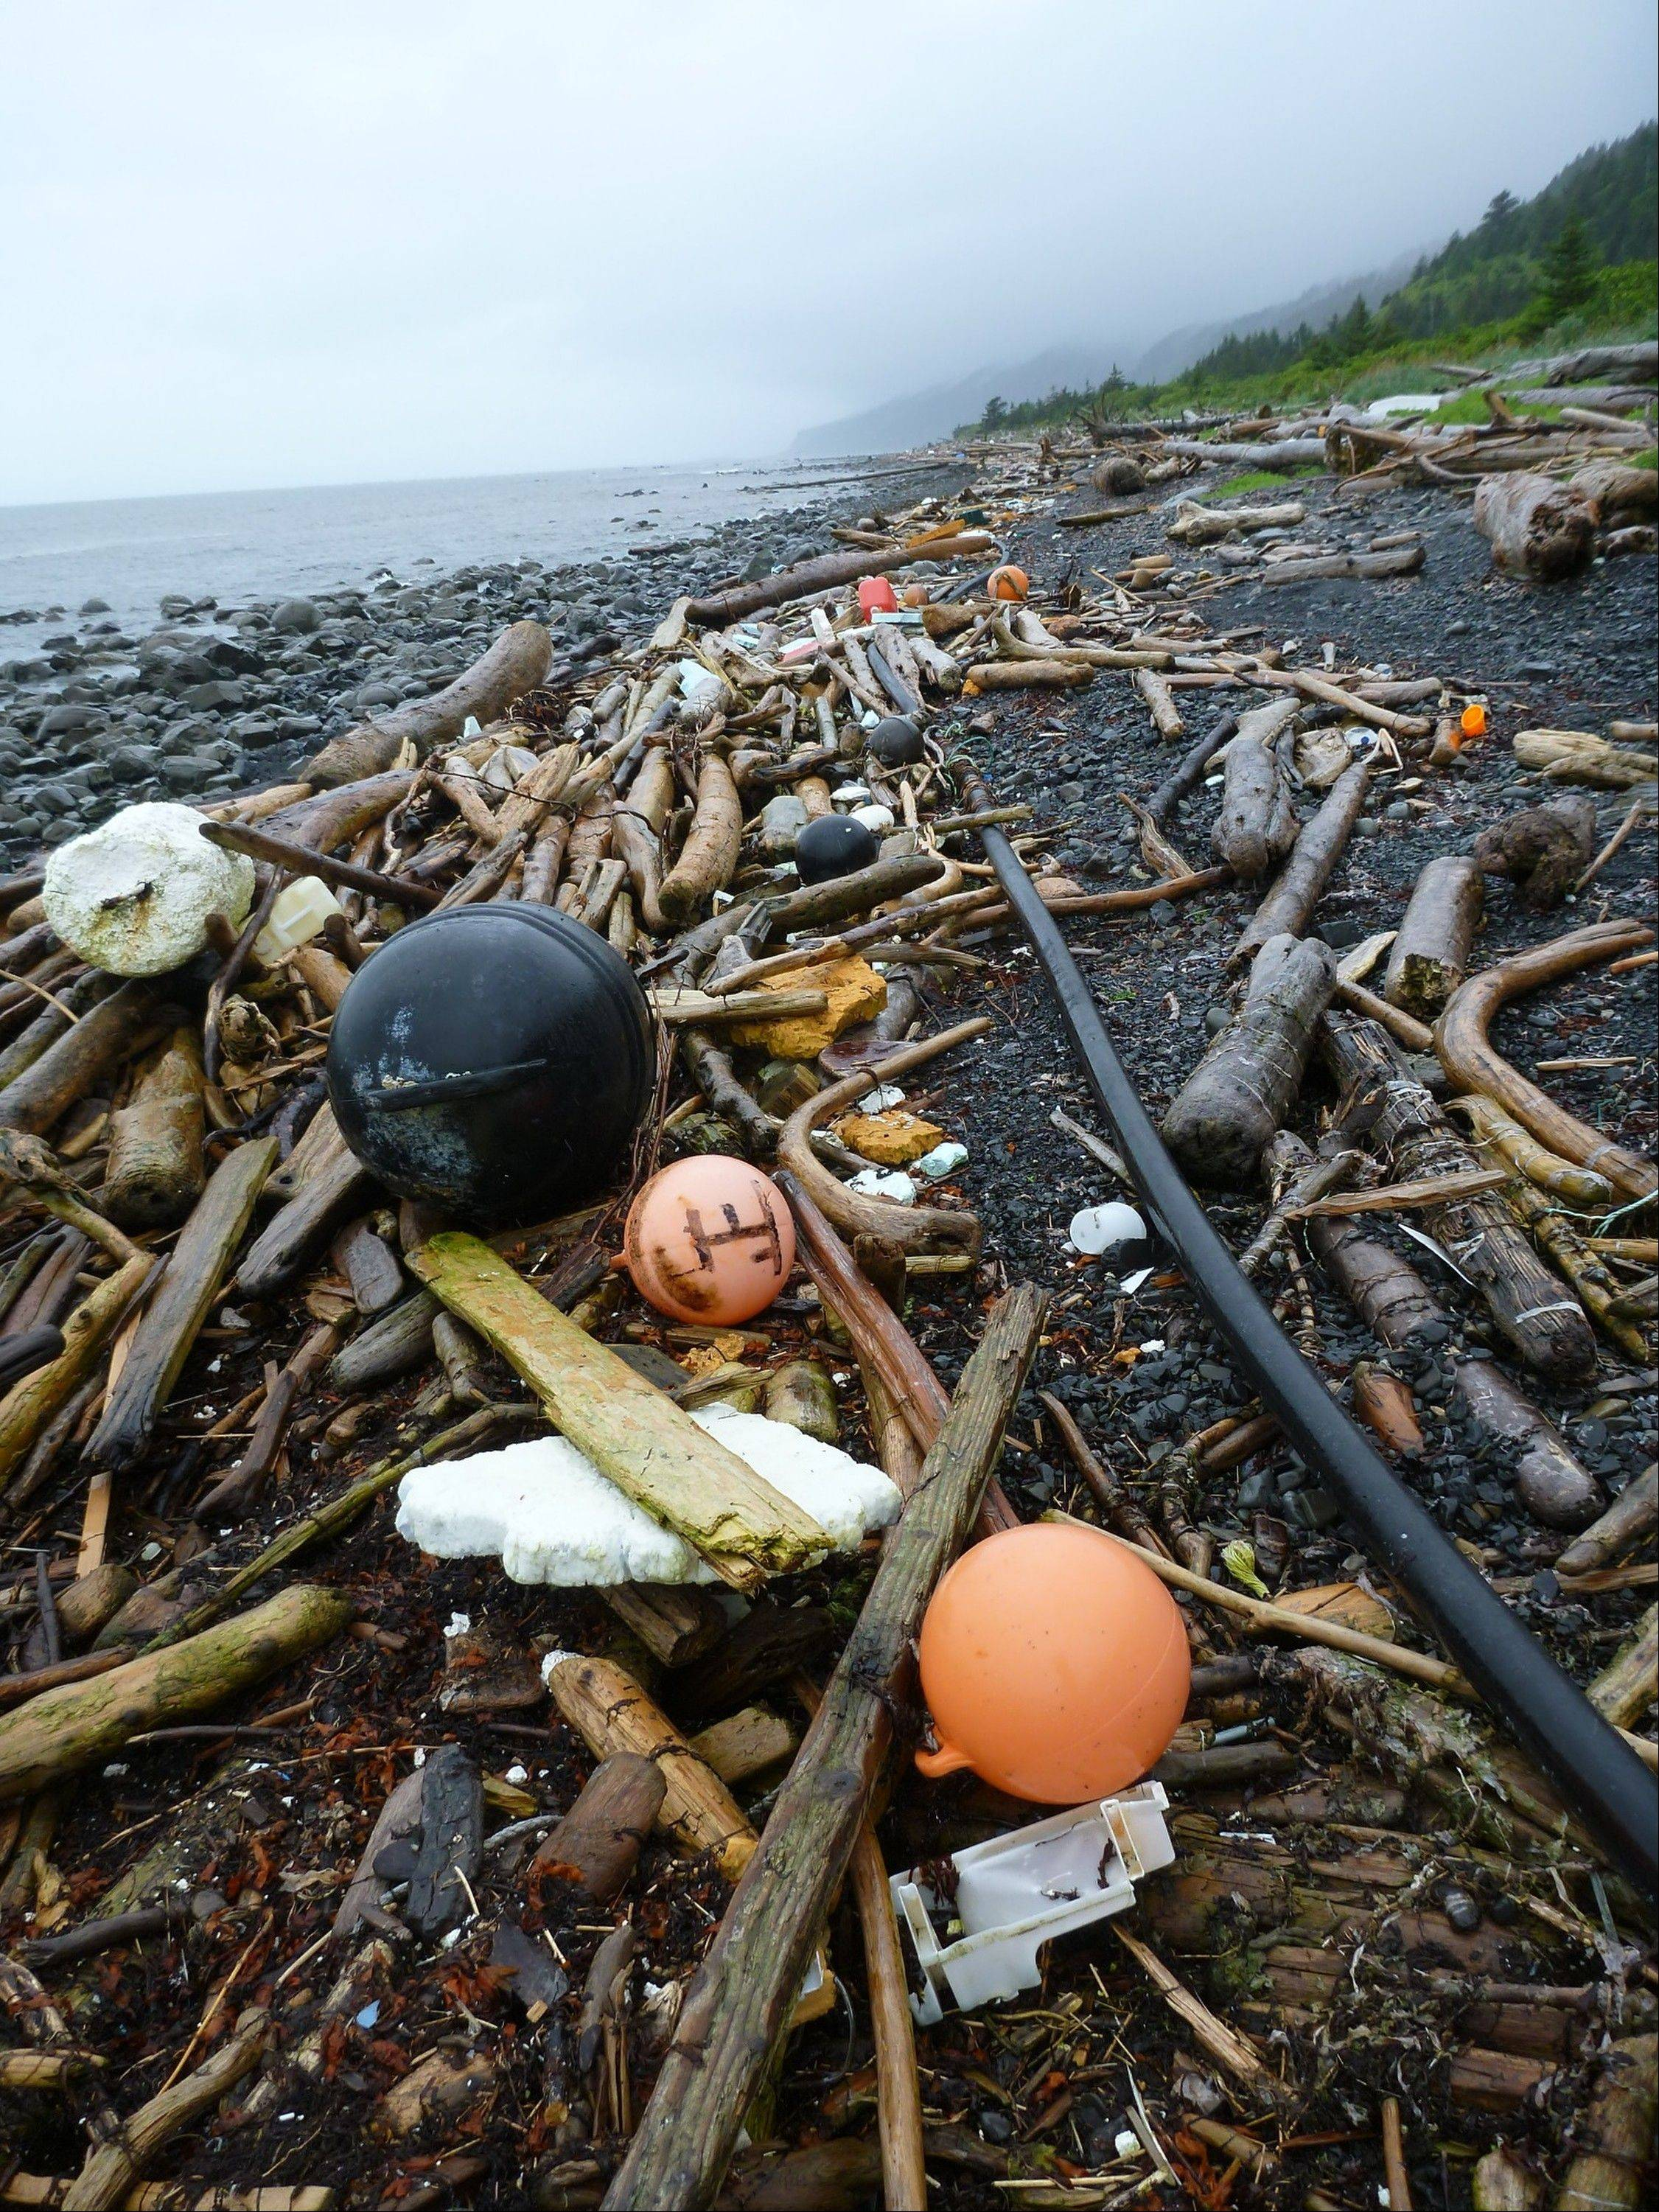 Some debris from Japan's 2011 tsunami has washed ashore on the U.S. Pacific coast, seen here. But reports that an island of debris remains on the ocean may be incorrect, according to the National Oceanic and Atmospheric Administration.